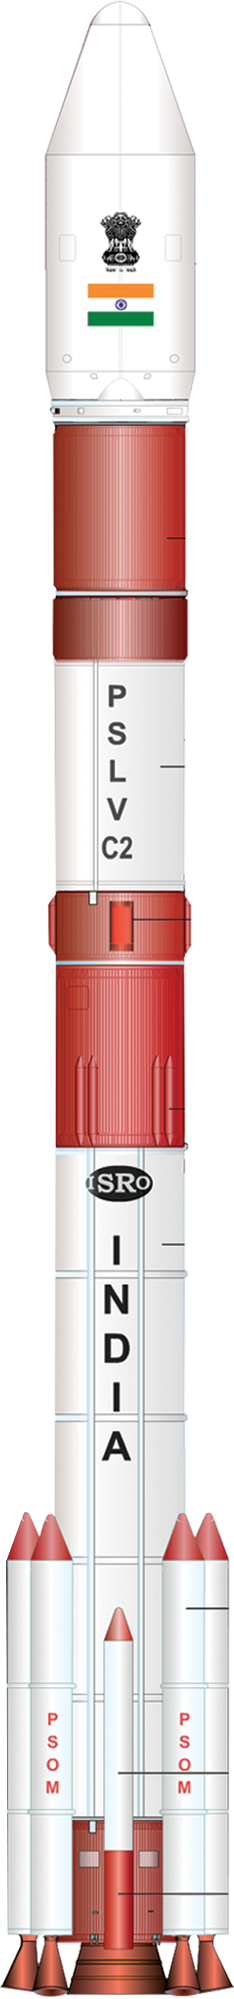 PSLV Launcher